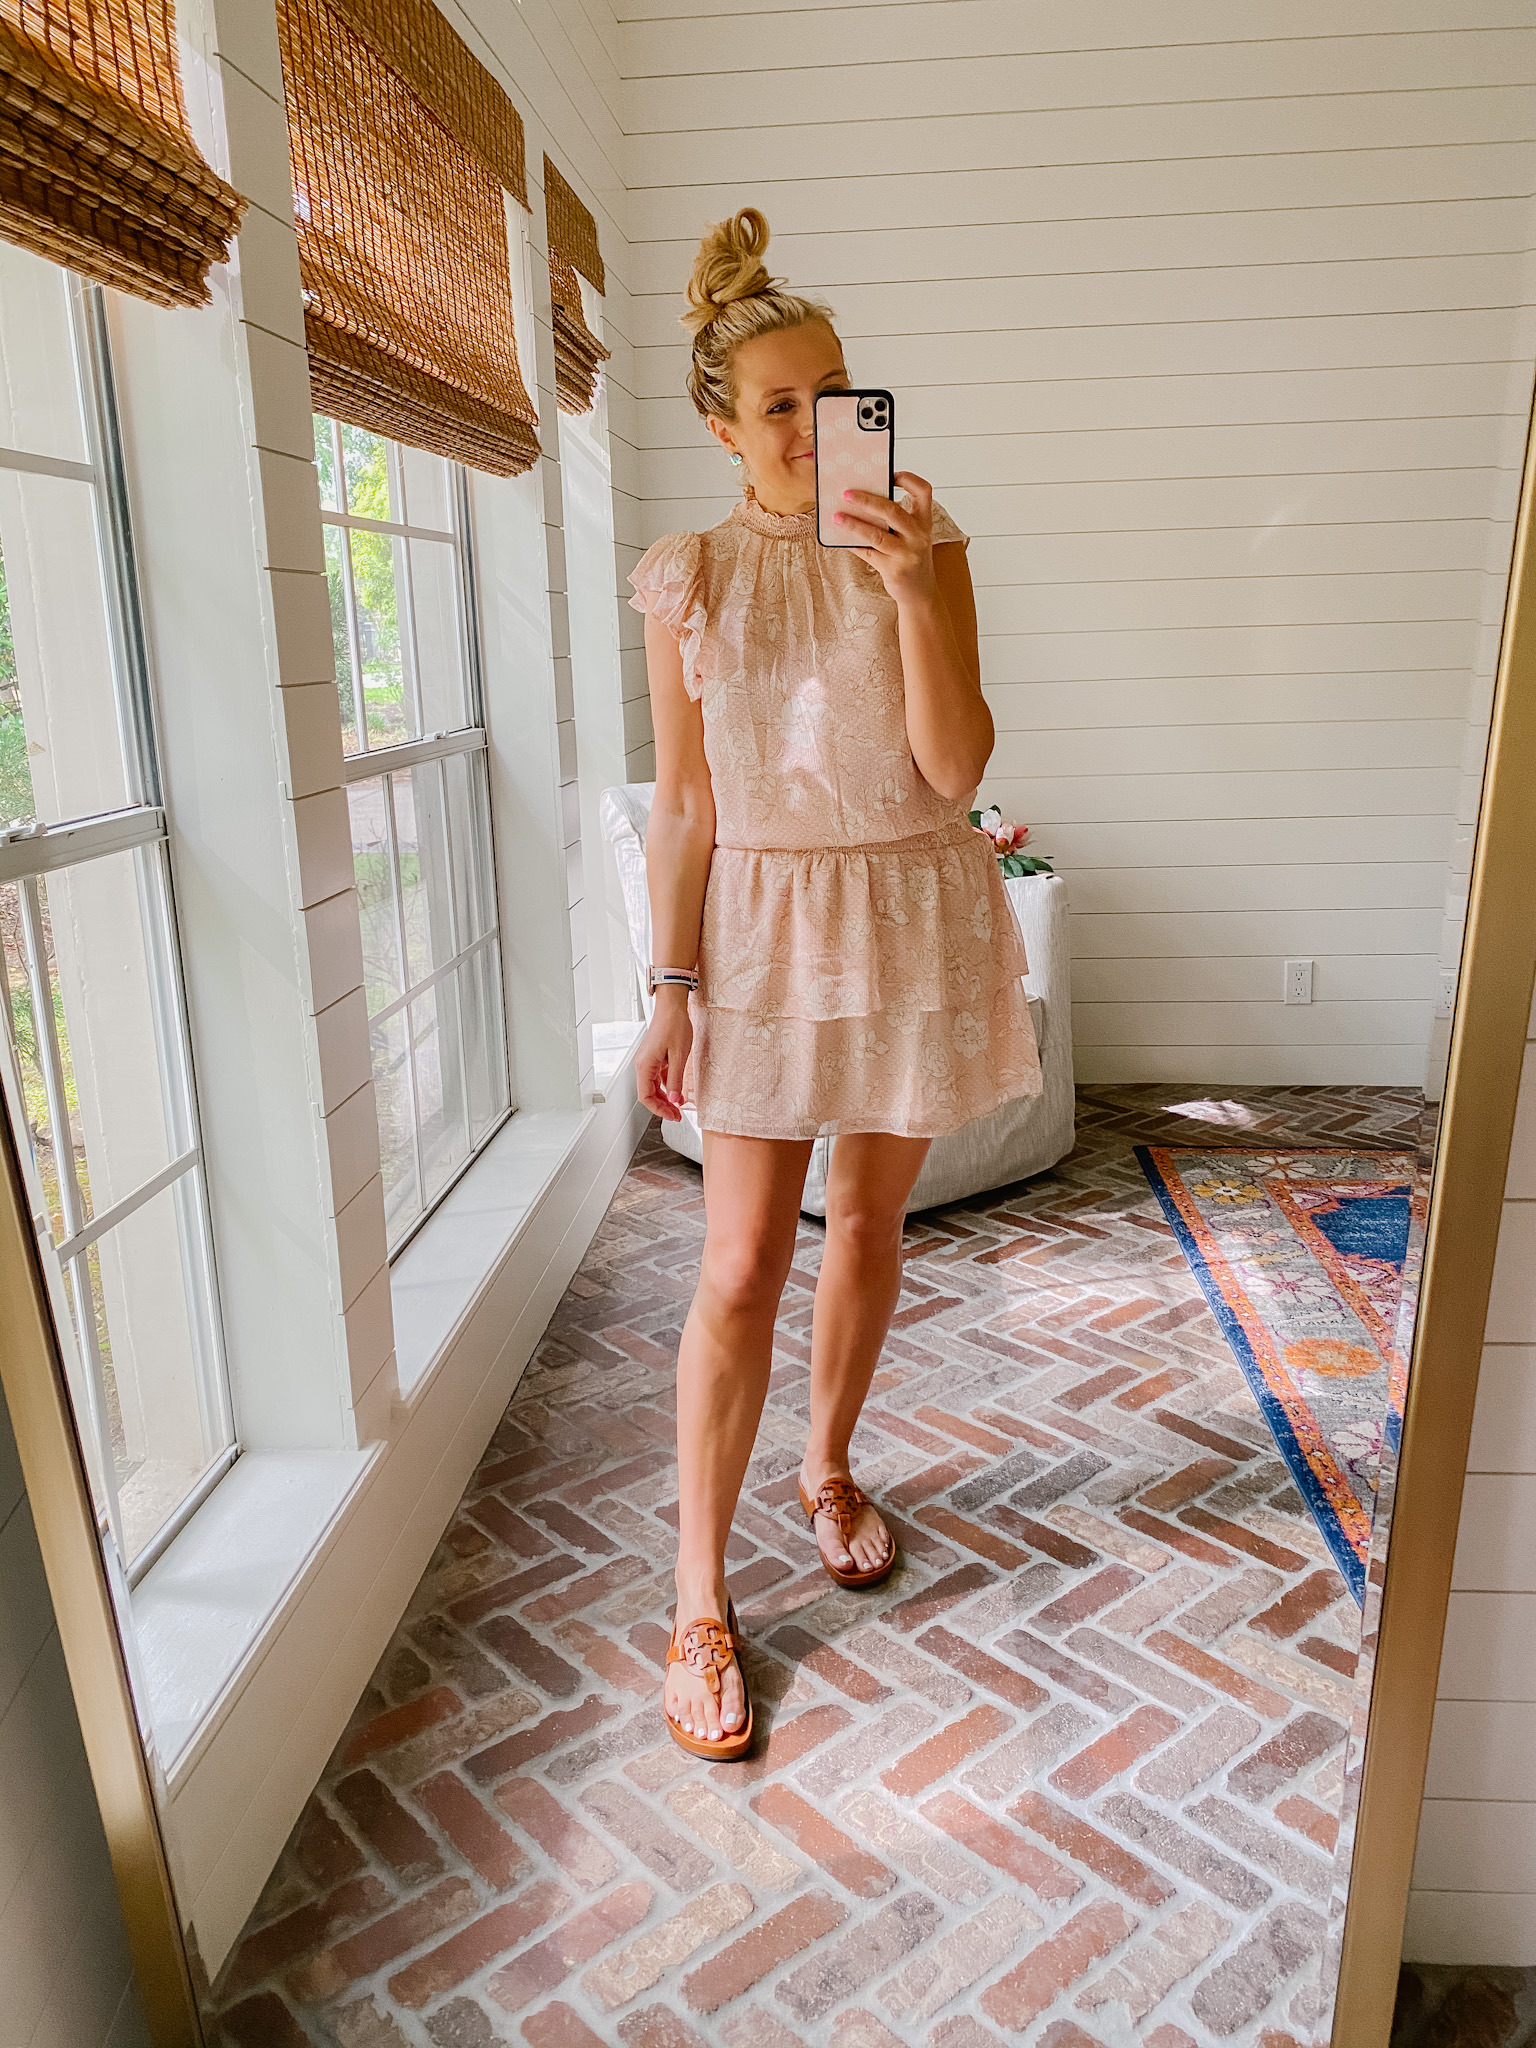 Express New Arrivals by popular Houston fashion blog, The House of Fancy: image of a woman wearing a Express peach colored floral print mock neck and tiered ruffle skirt mini dress with brown slide sandals.